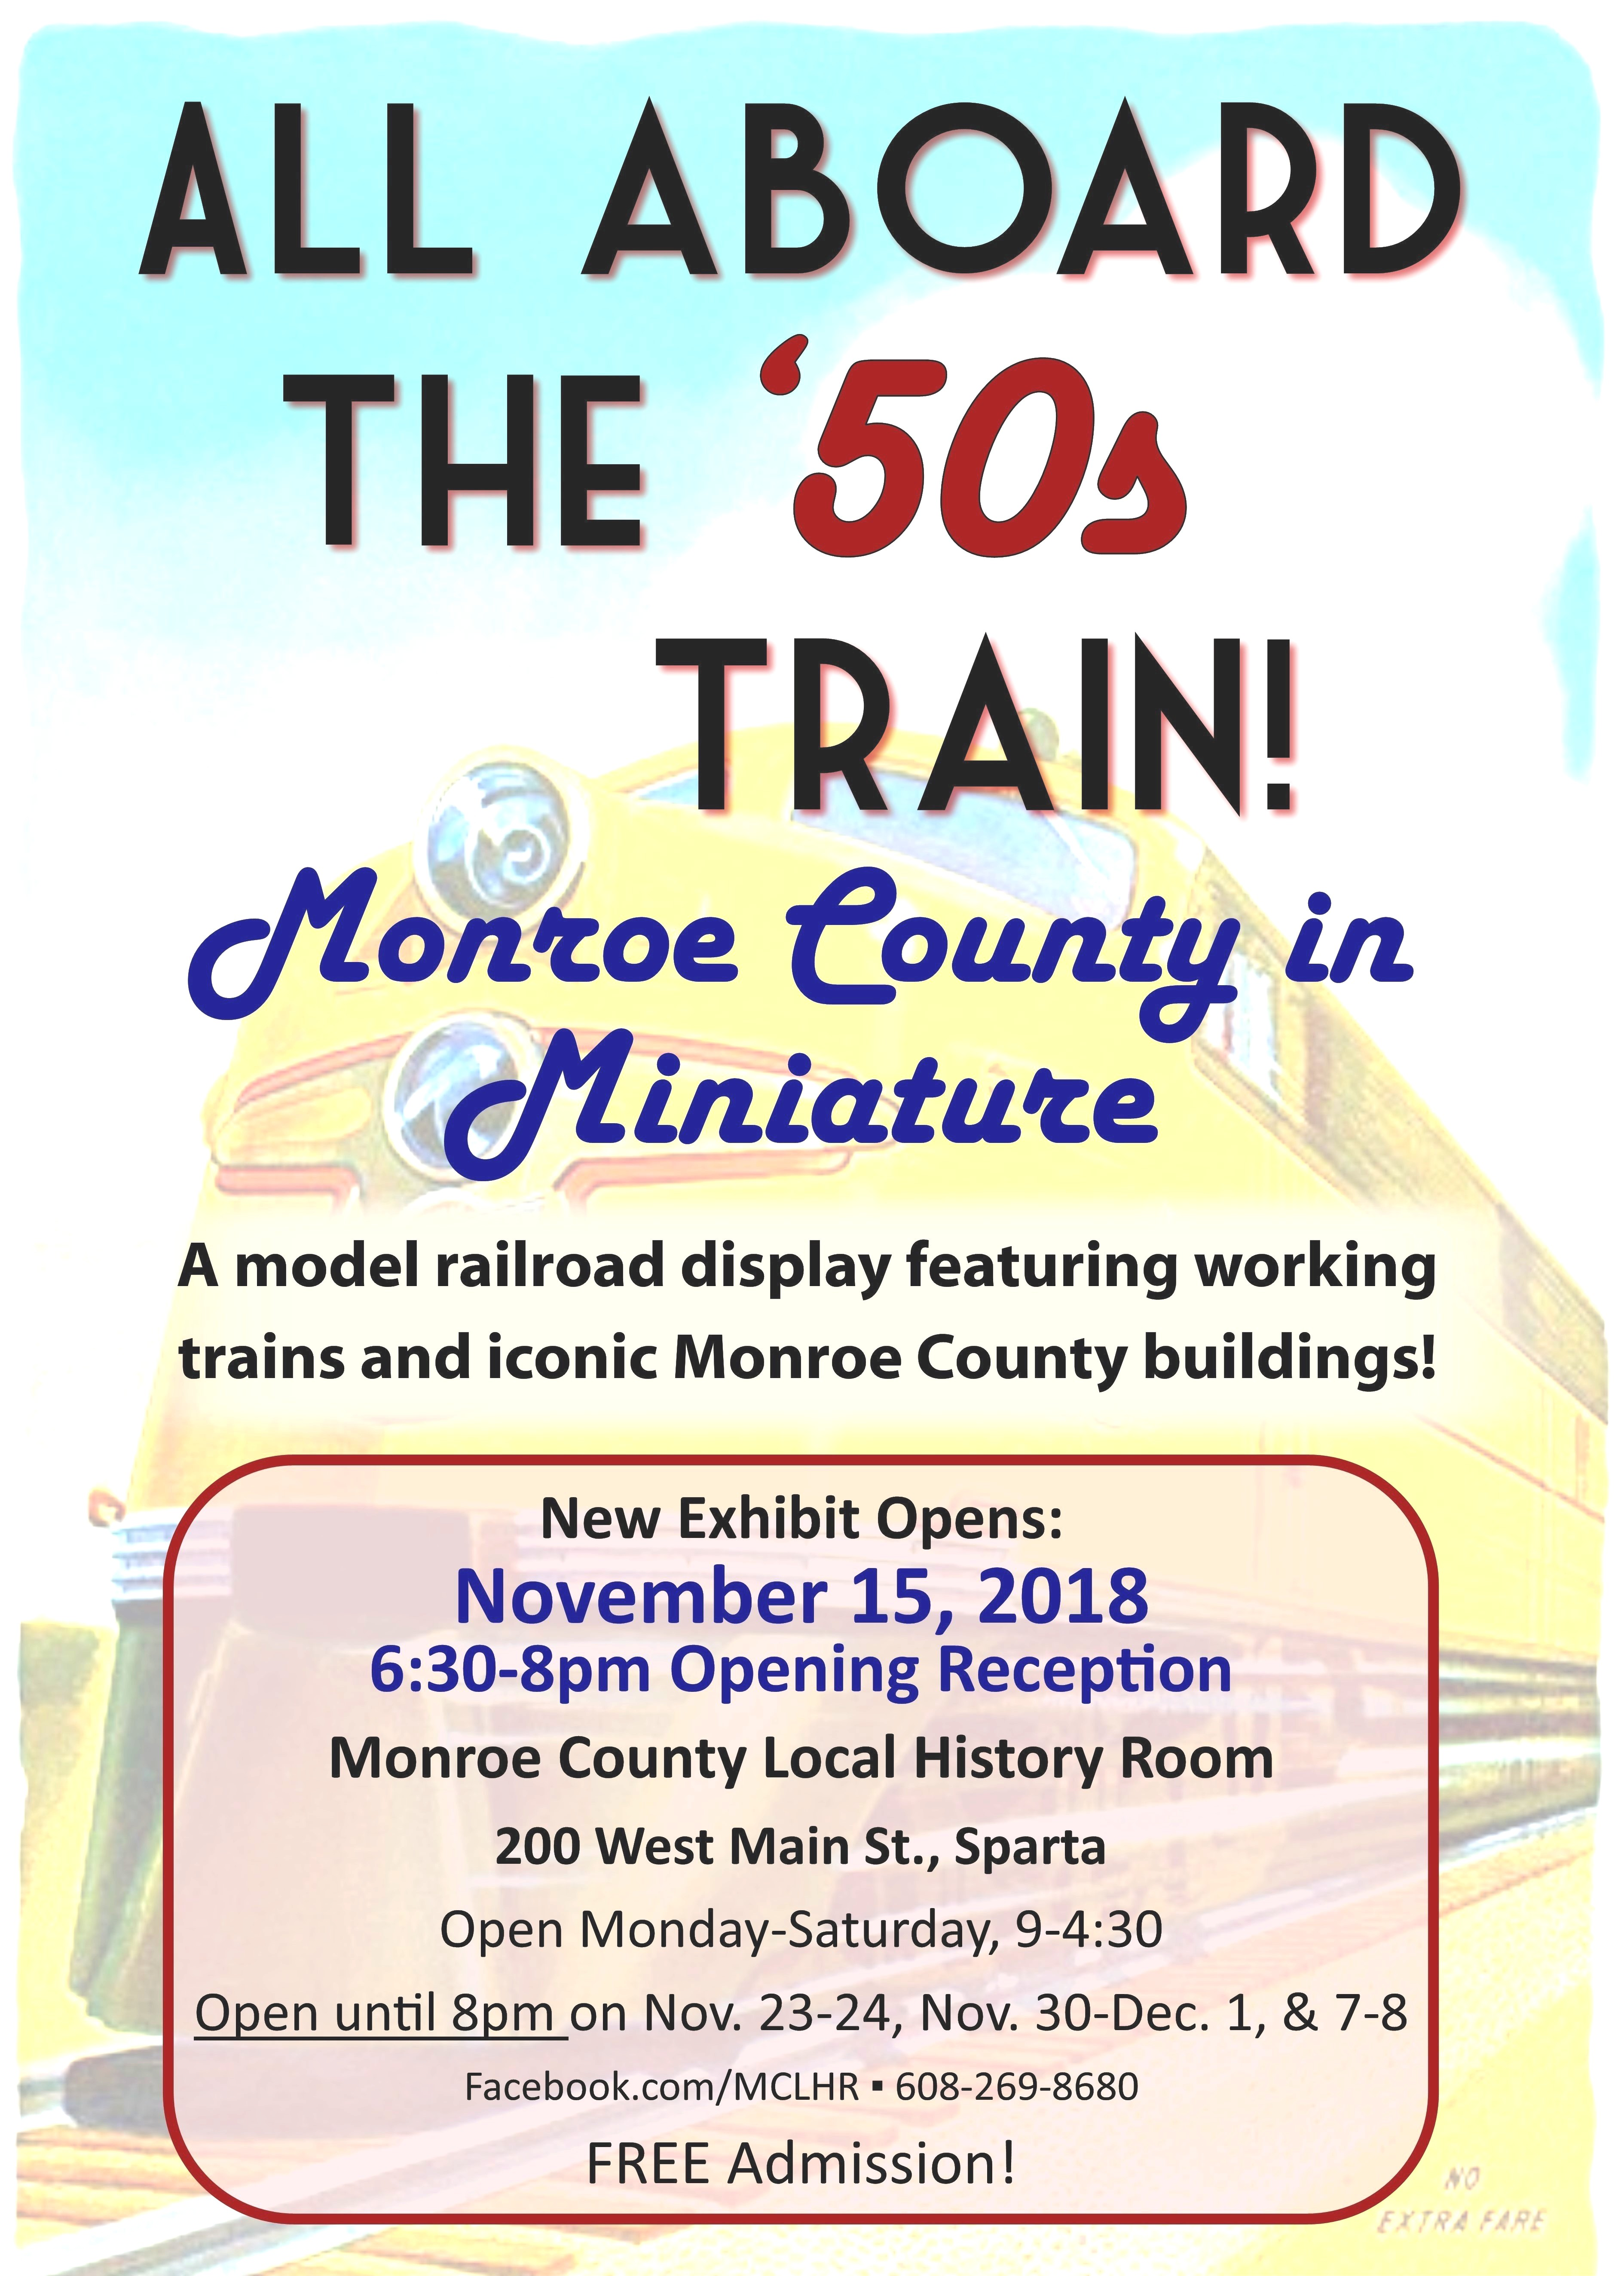 Monroe County Local History Museum: The best website to research